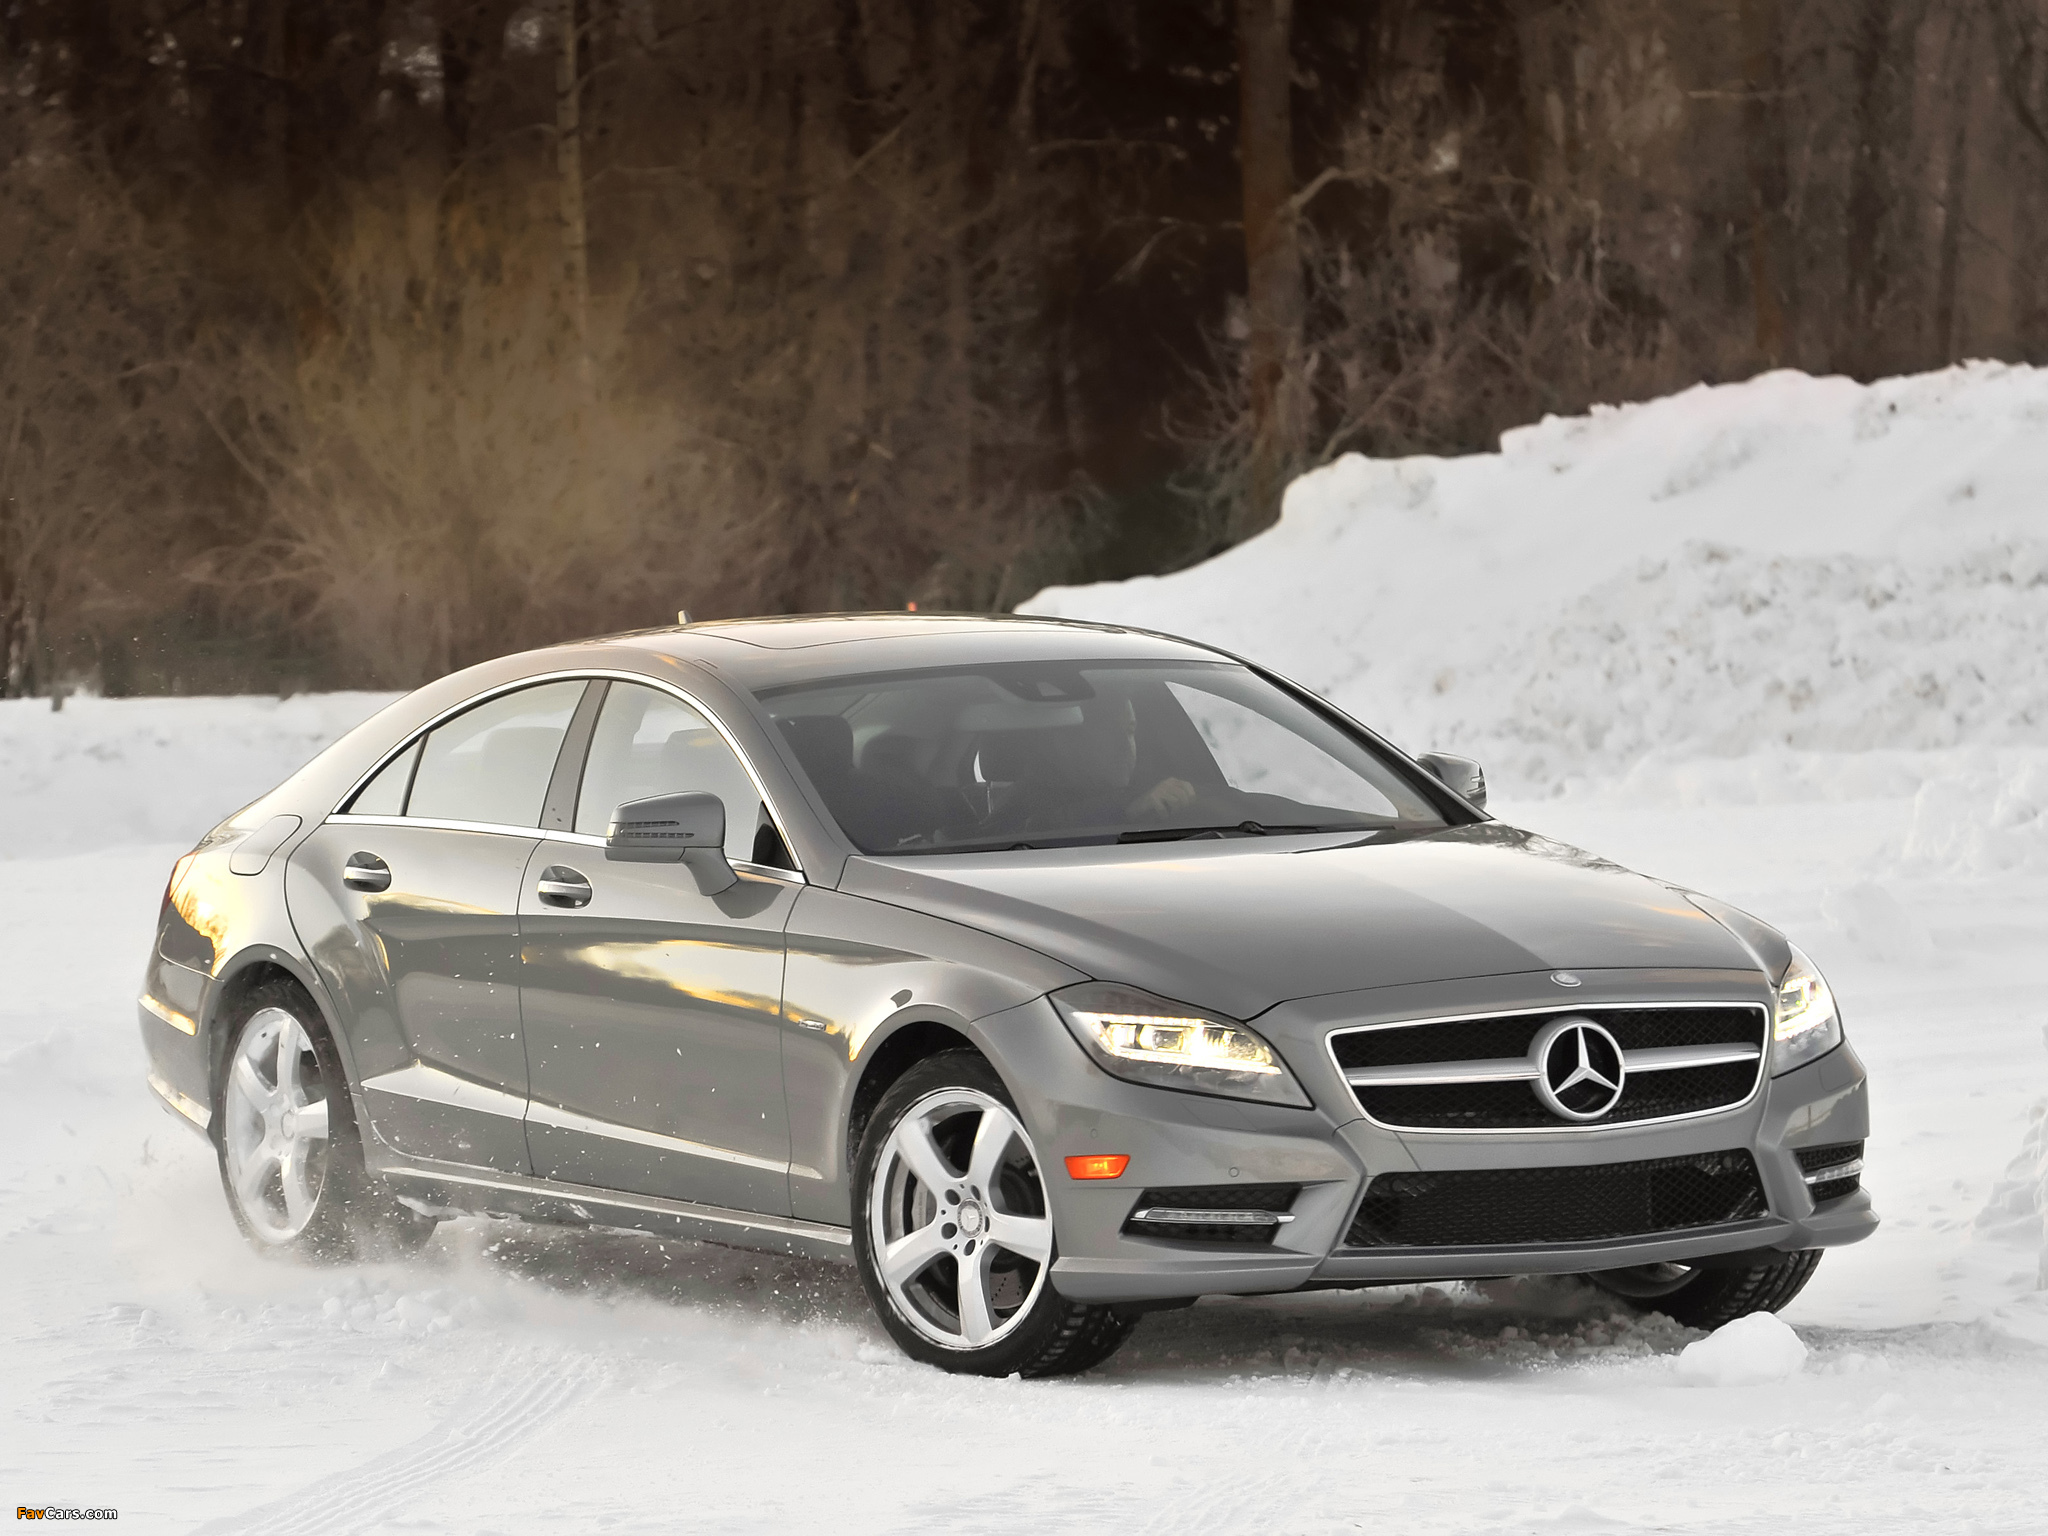 Wallpapers Of Mercedes Benz Cls 550 4matic Amg Sports